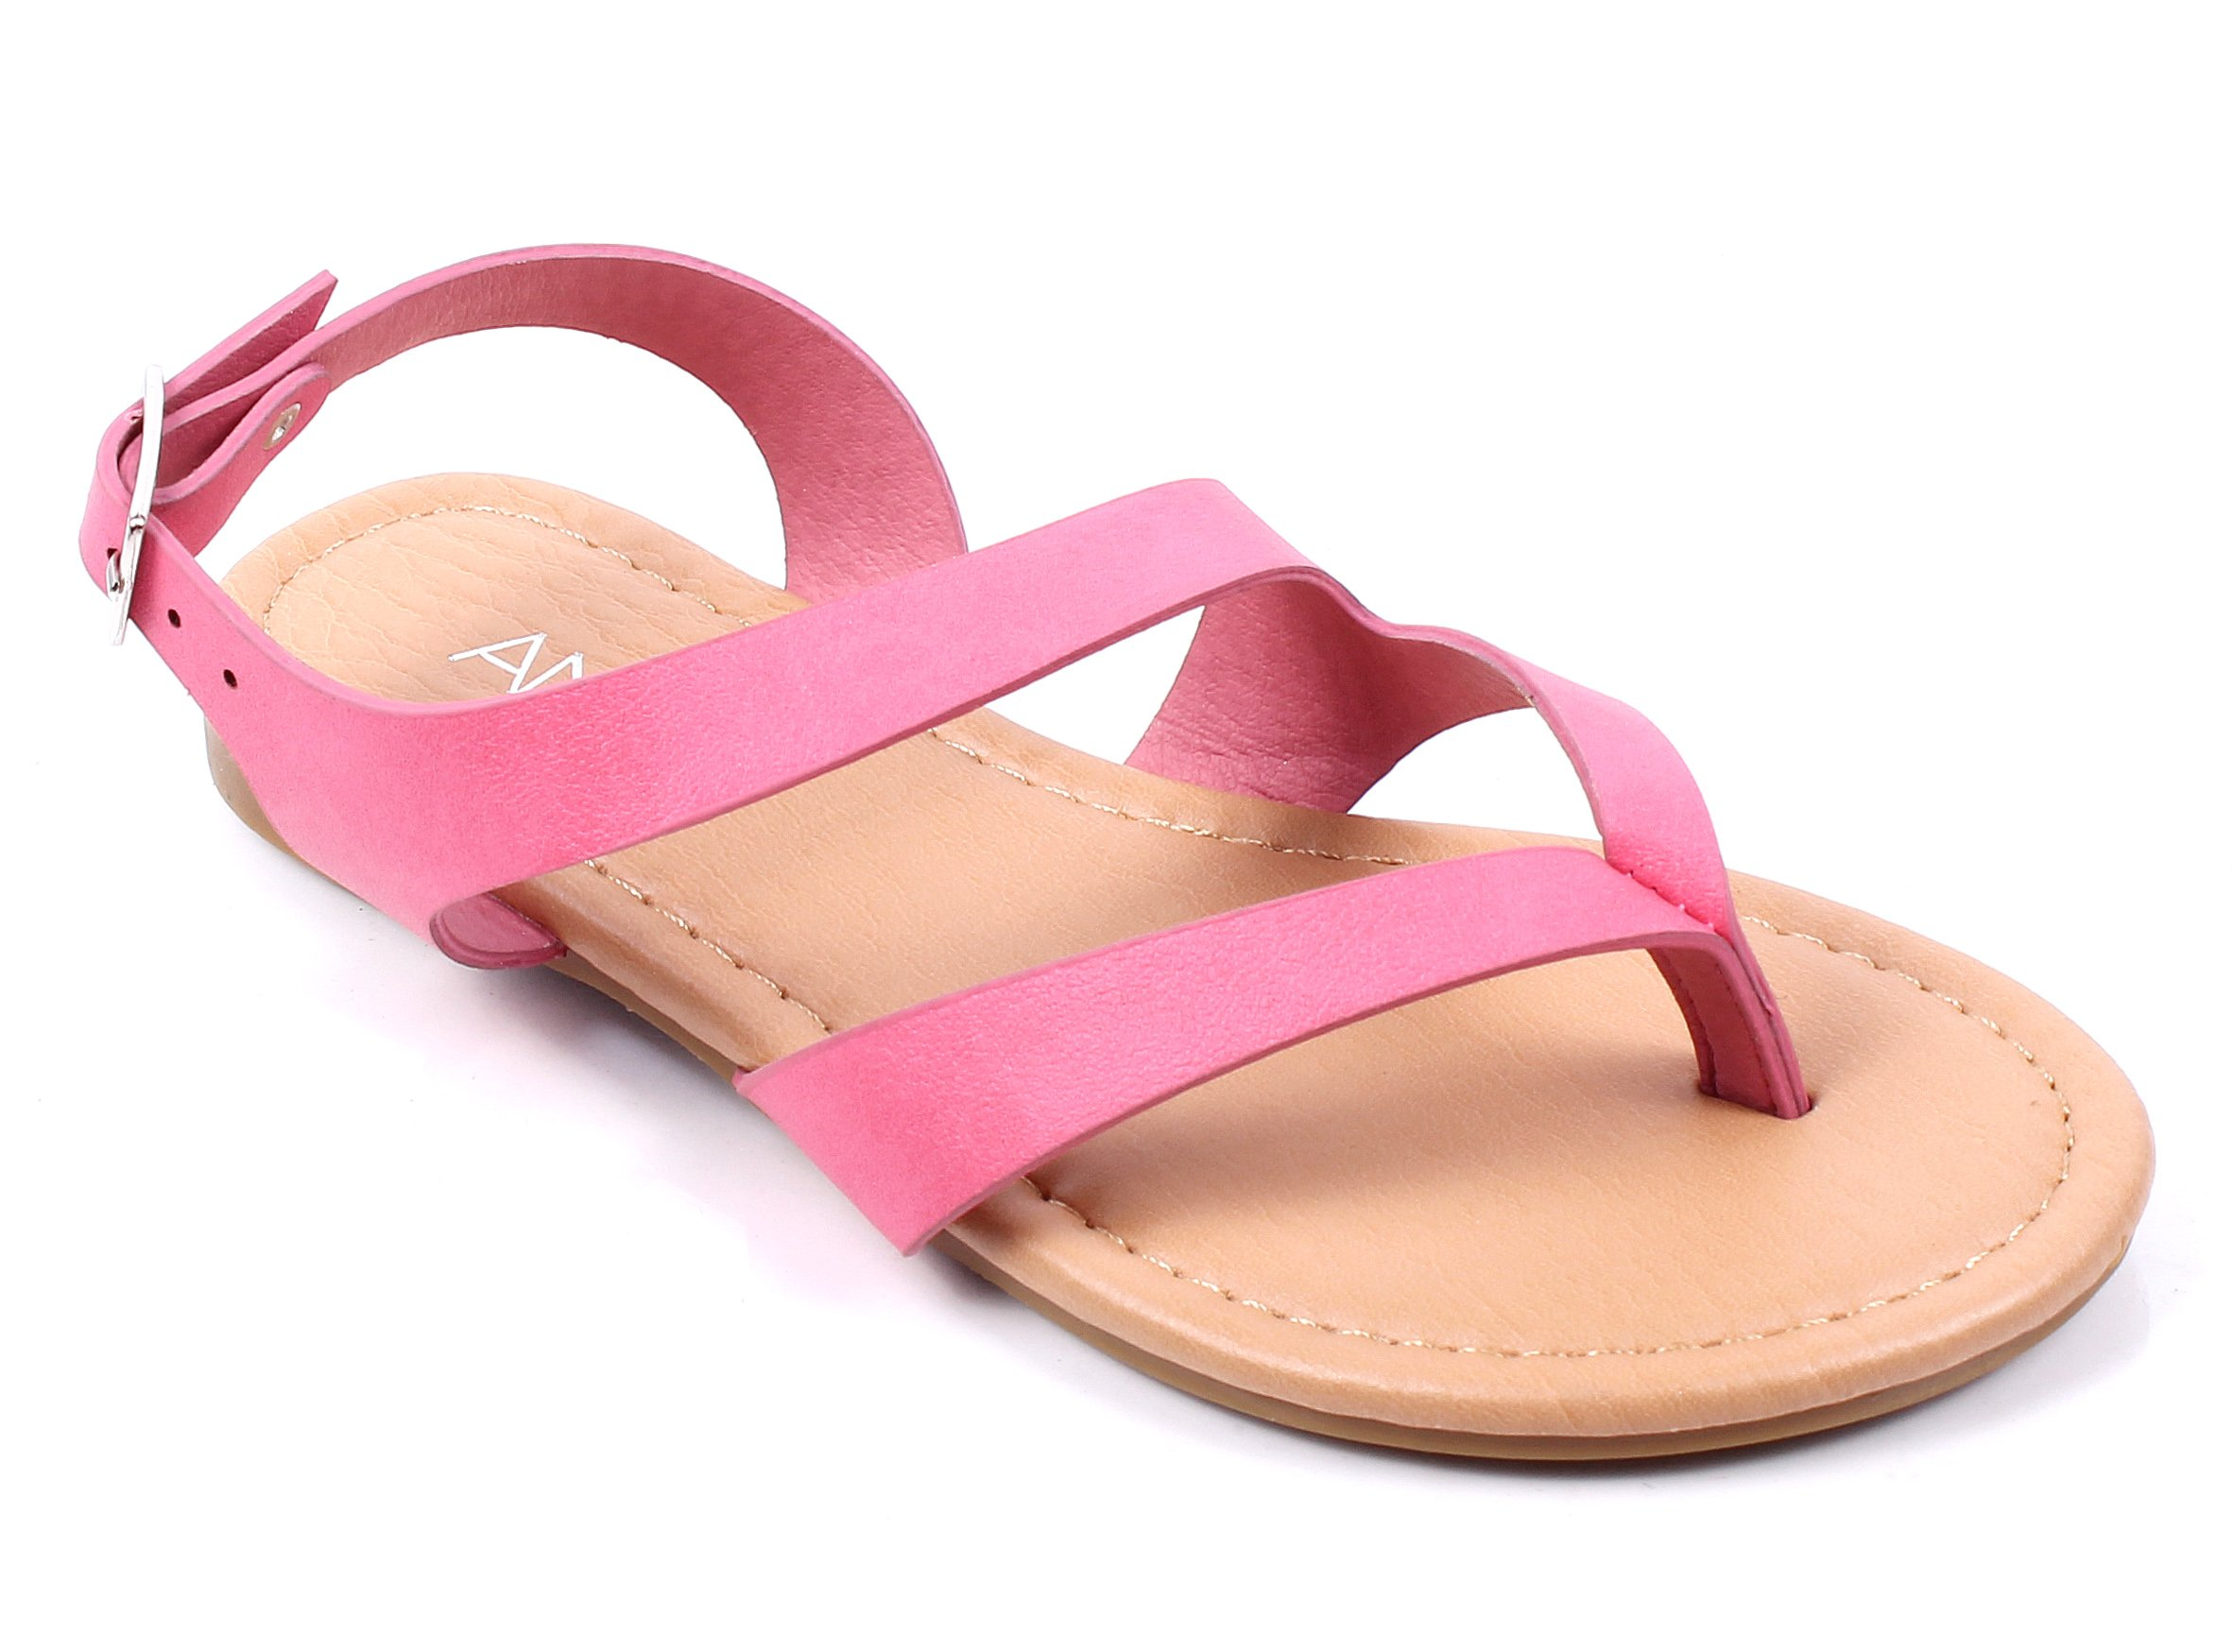 New Cute Slip on Kids Strappy Buckle Summer Sandals Girls Flats Youth Casual Shoes New Without Box (11, Fuchsia)